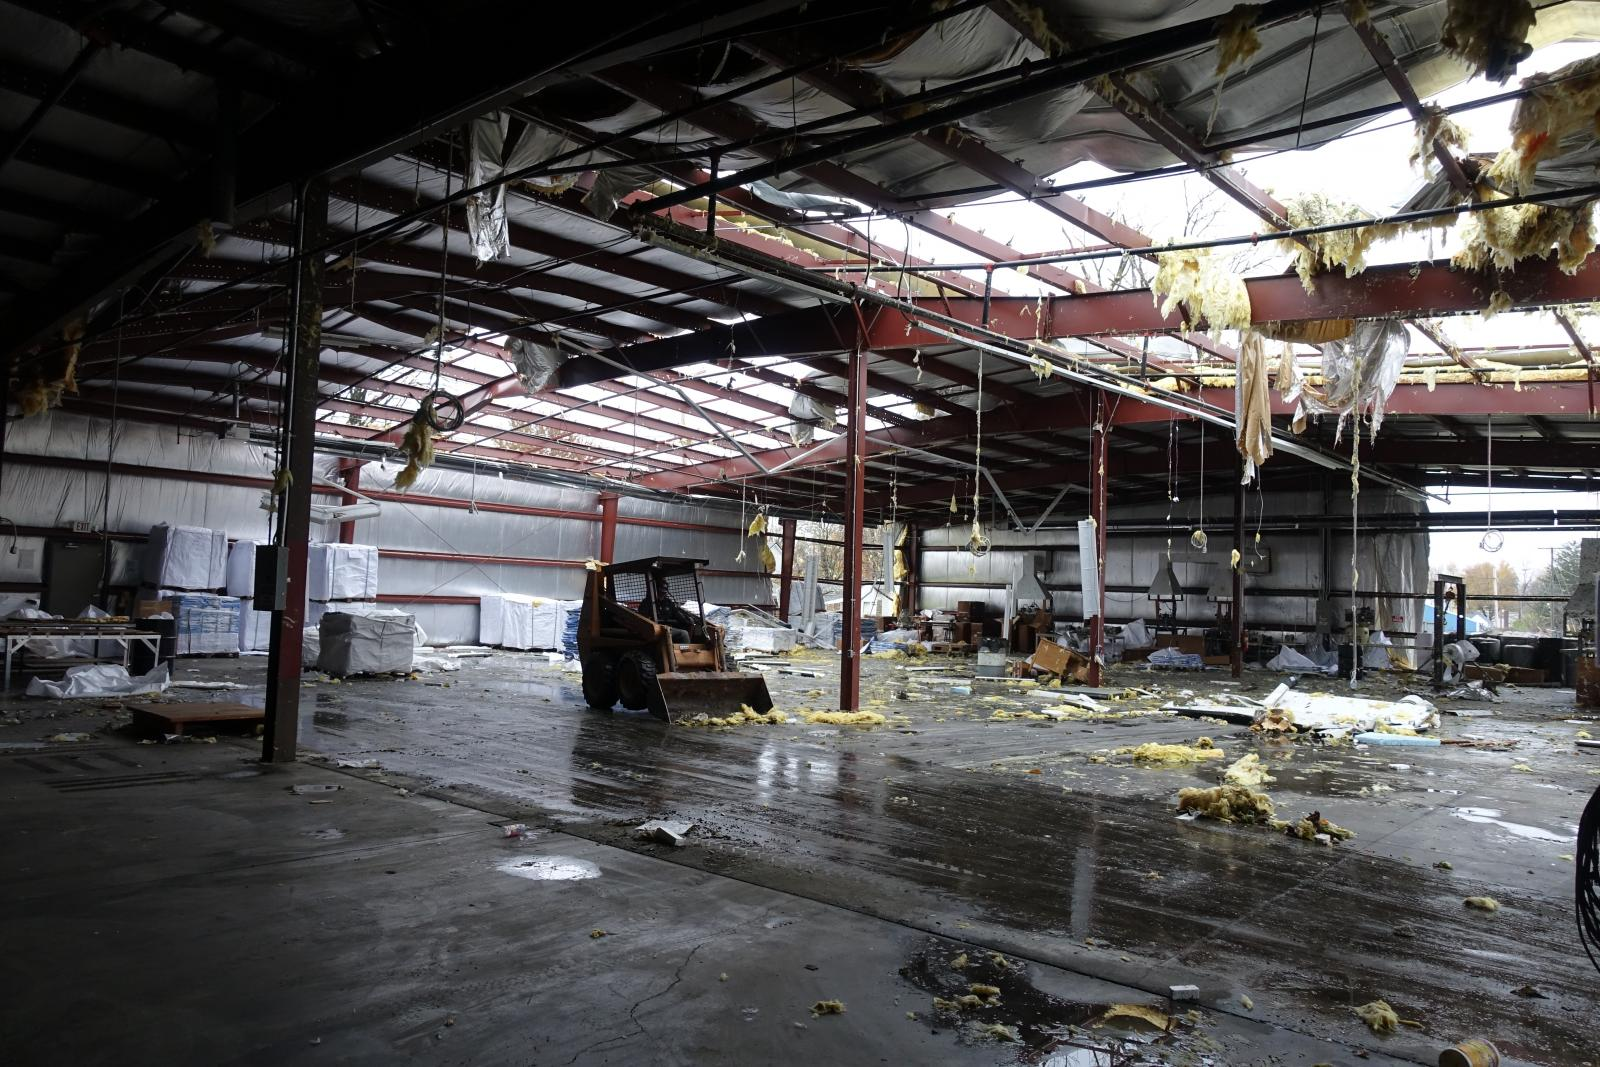 Warehouse damage from Galion Tornado